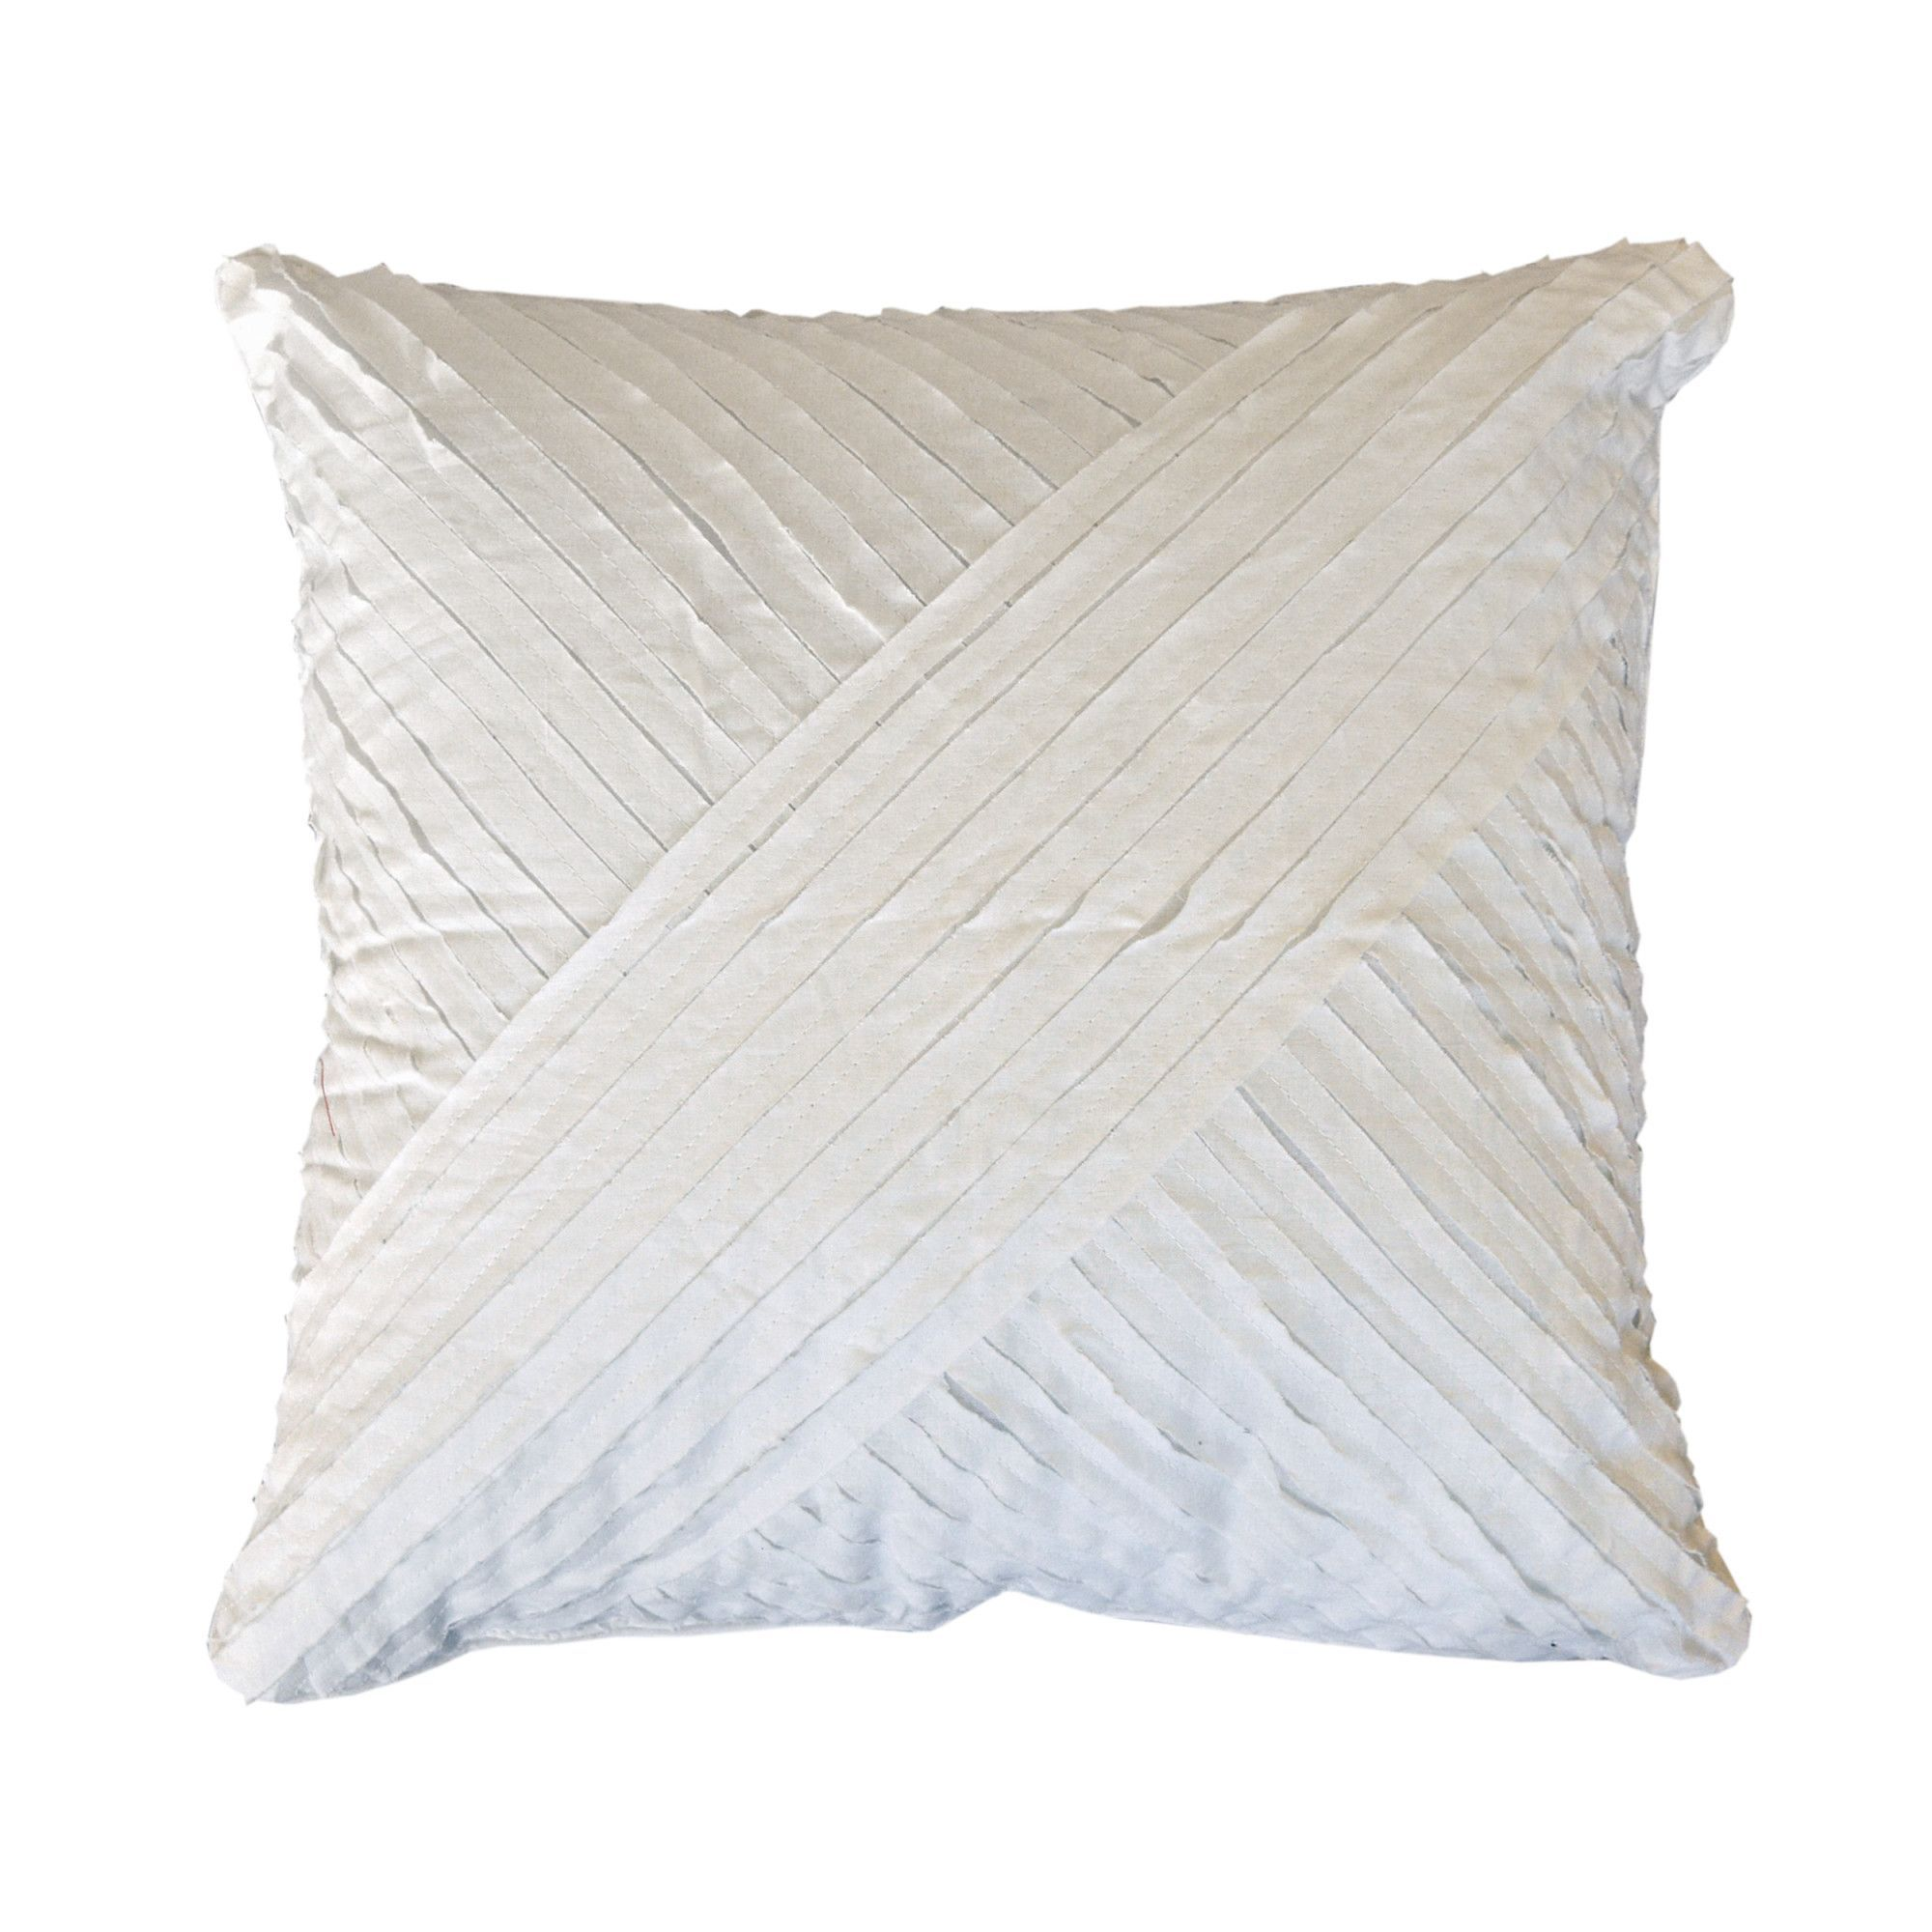 Petals Cotton Throw Pillow